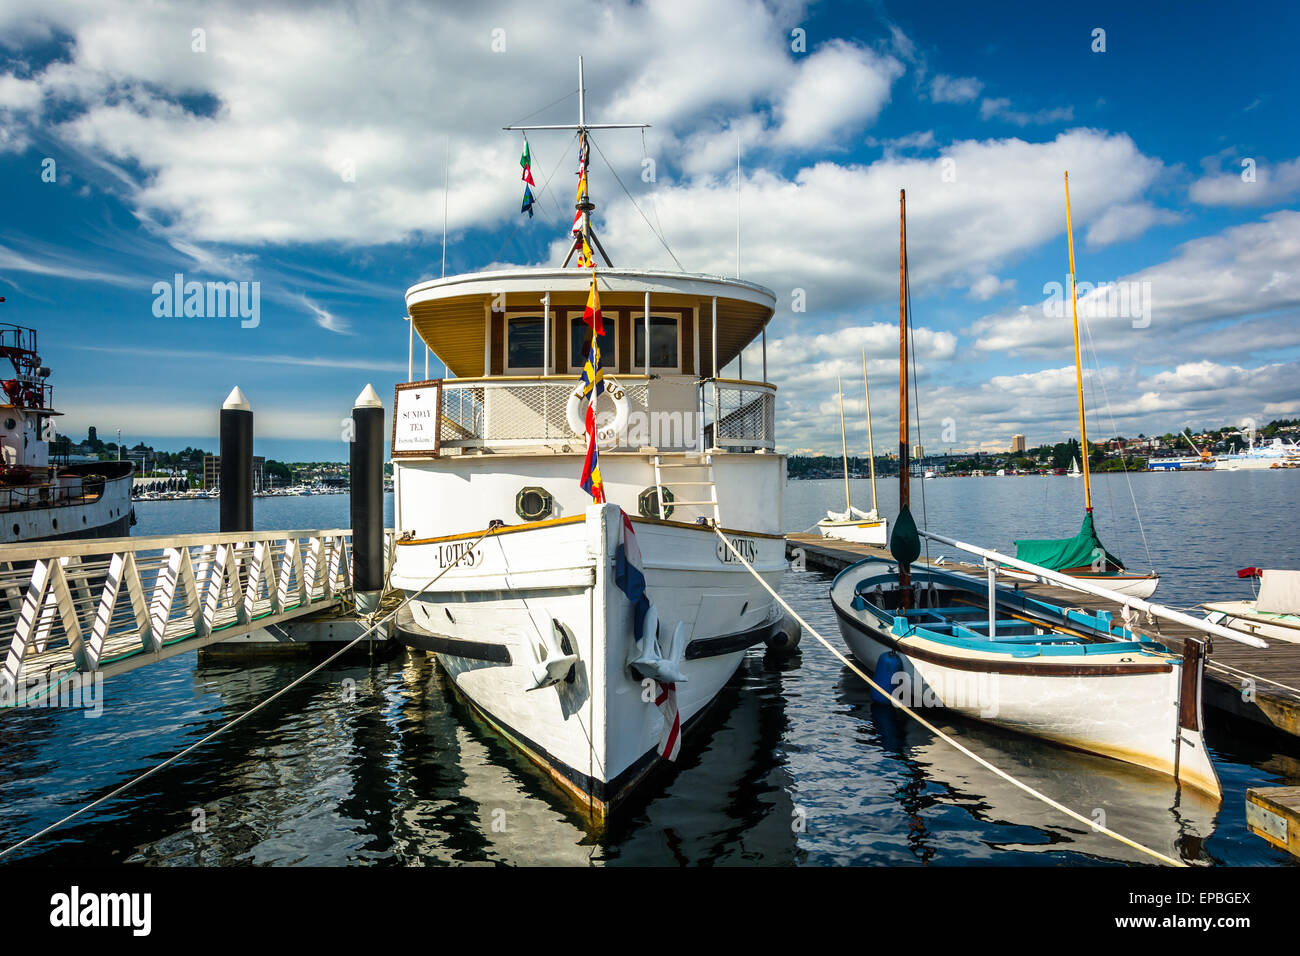 Boats docked at Lake Union, in Seattle, Washington. - Stock Image